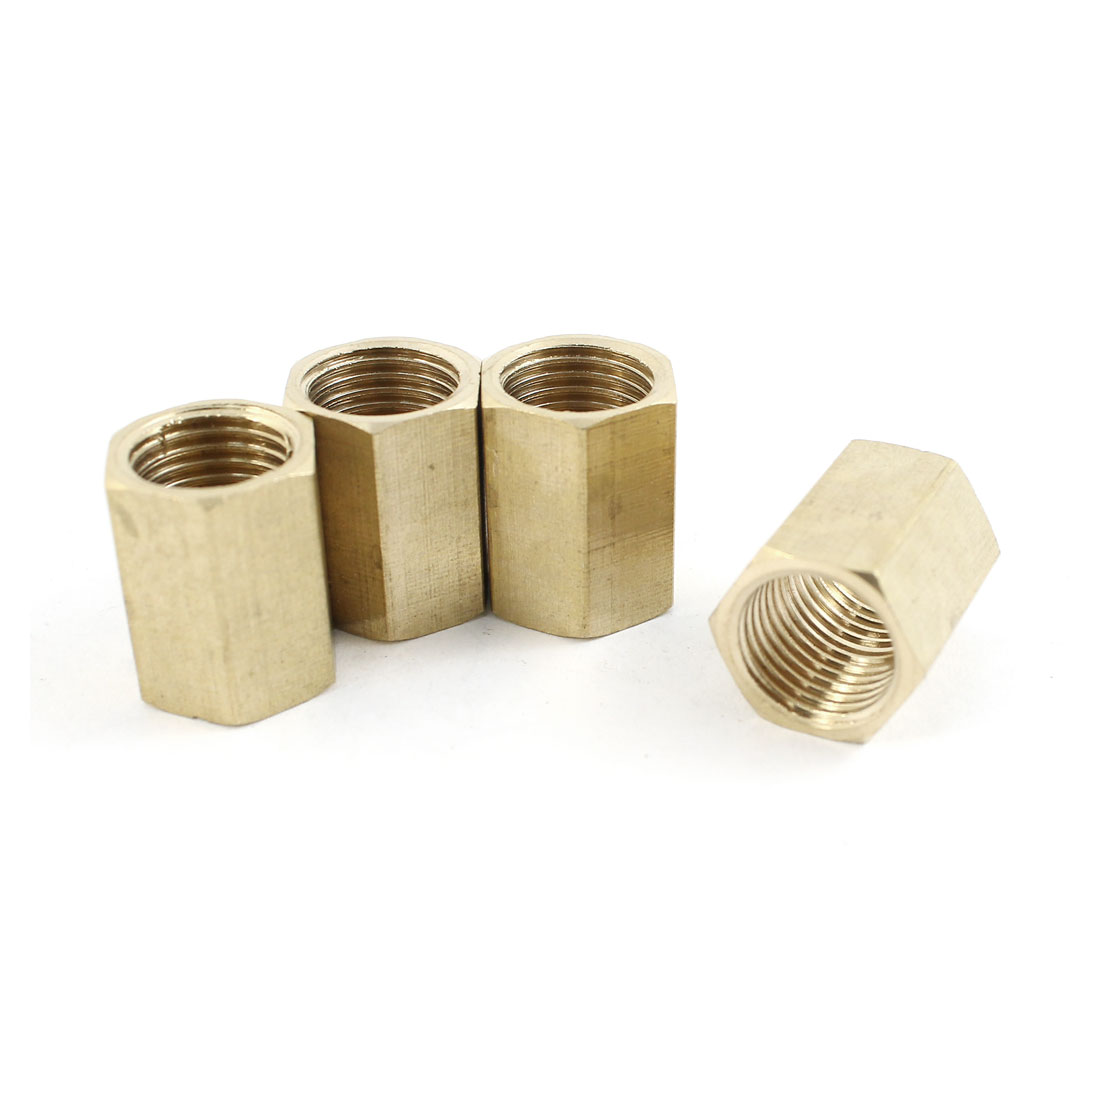 4pcs 1/4PT Female Thread Hex Straight Air Pneumatic Connector Joint Adapter Brass Tone